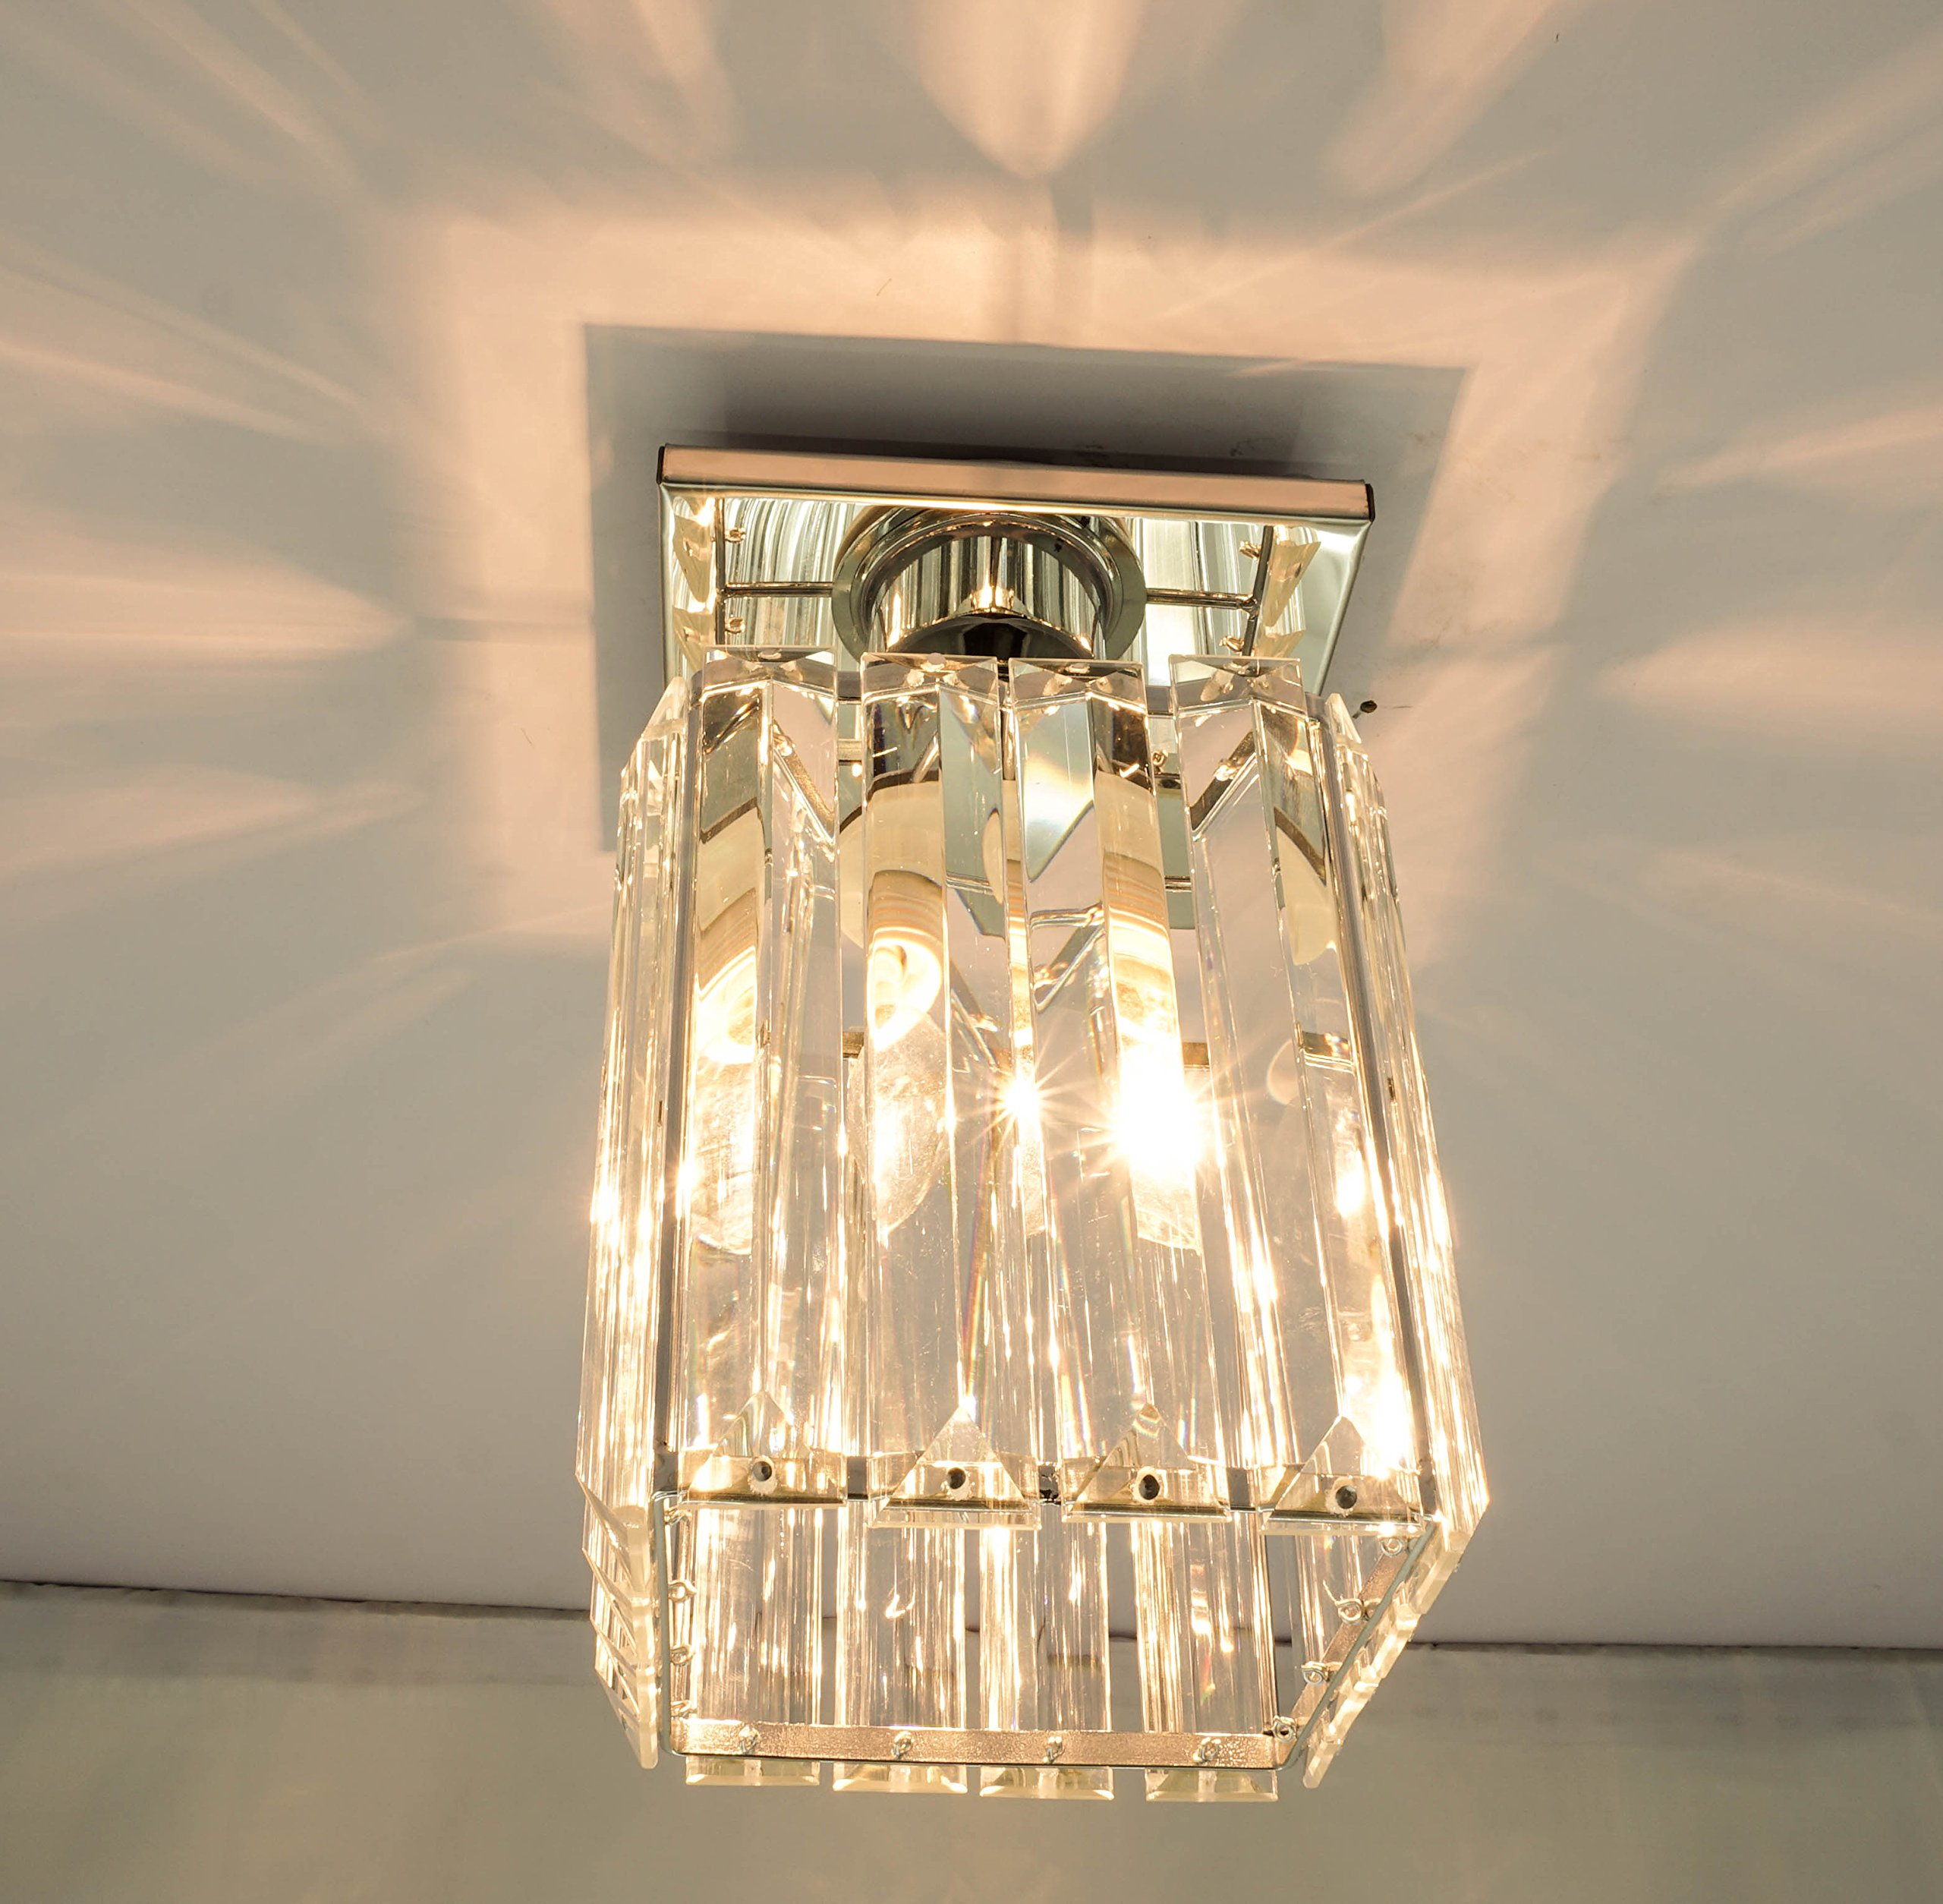 Agnes Lighting Crystal Ceiling Lamp, Chandelier, 1 Light, W5.12''L5.12 H8.27'' by Agnes Lighting (Image #2)